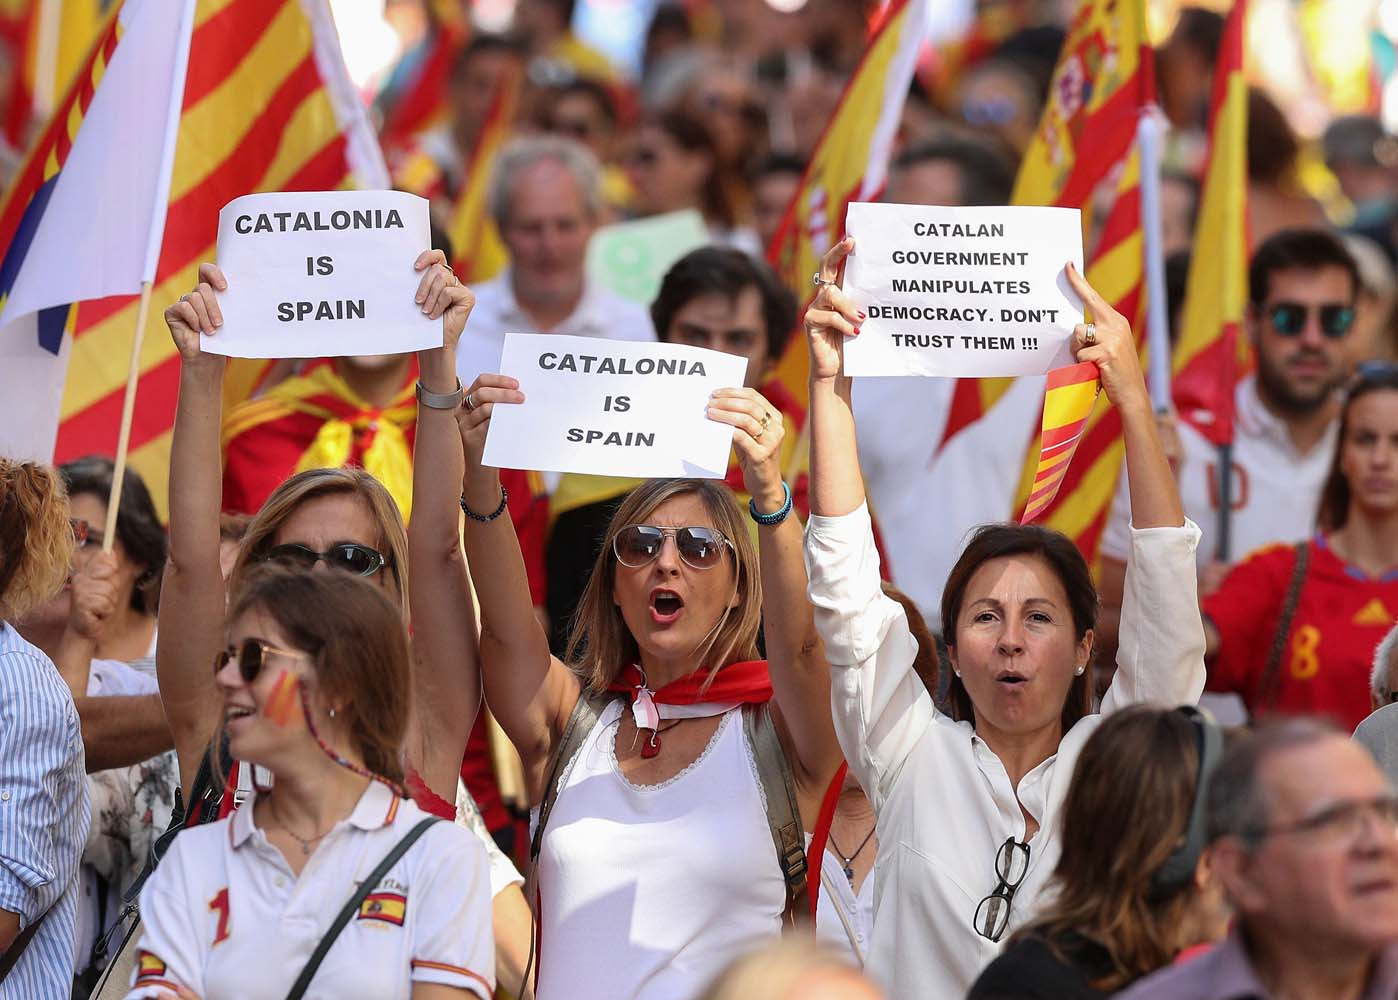 People hold up signs as they attend a pro-union demonstration organised by the Catalan Civil Society organisation in Barcelona, Spain, October 8, 2017. REUTERS/Albert Gea